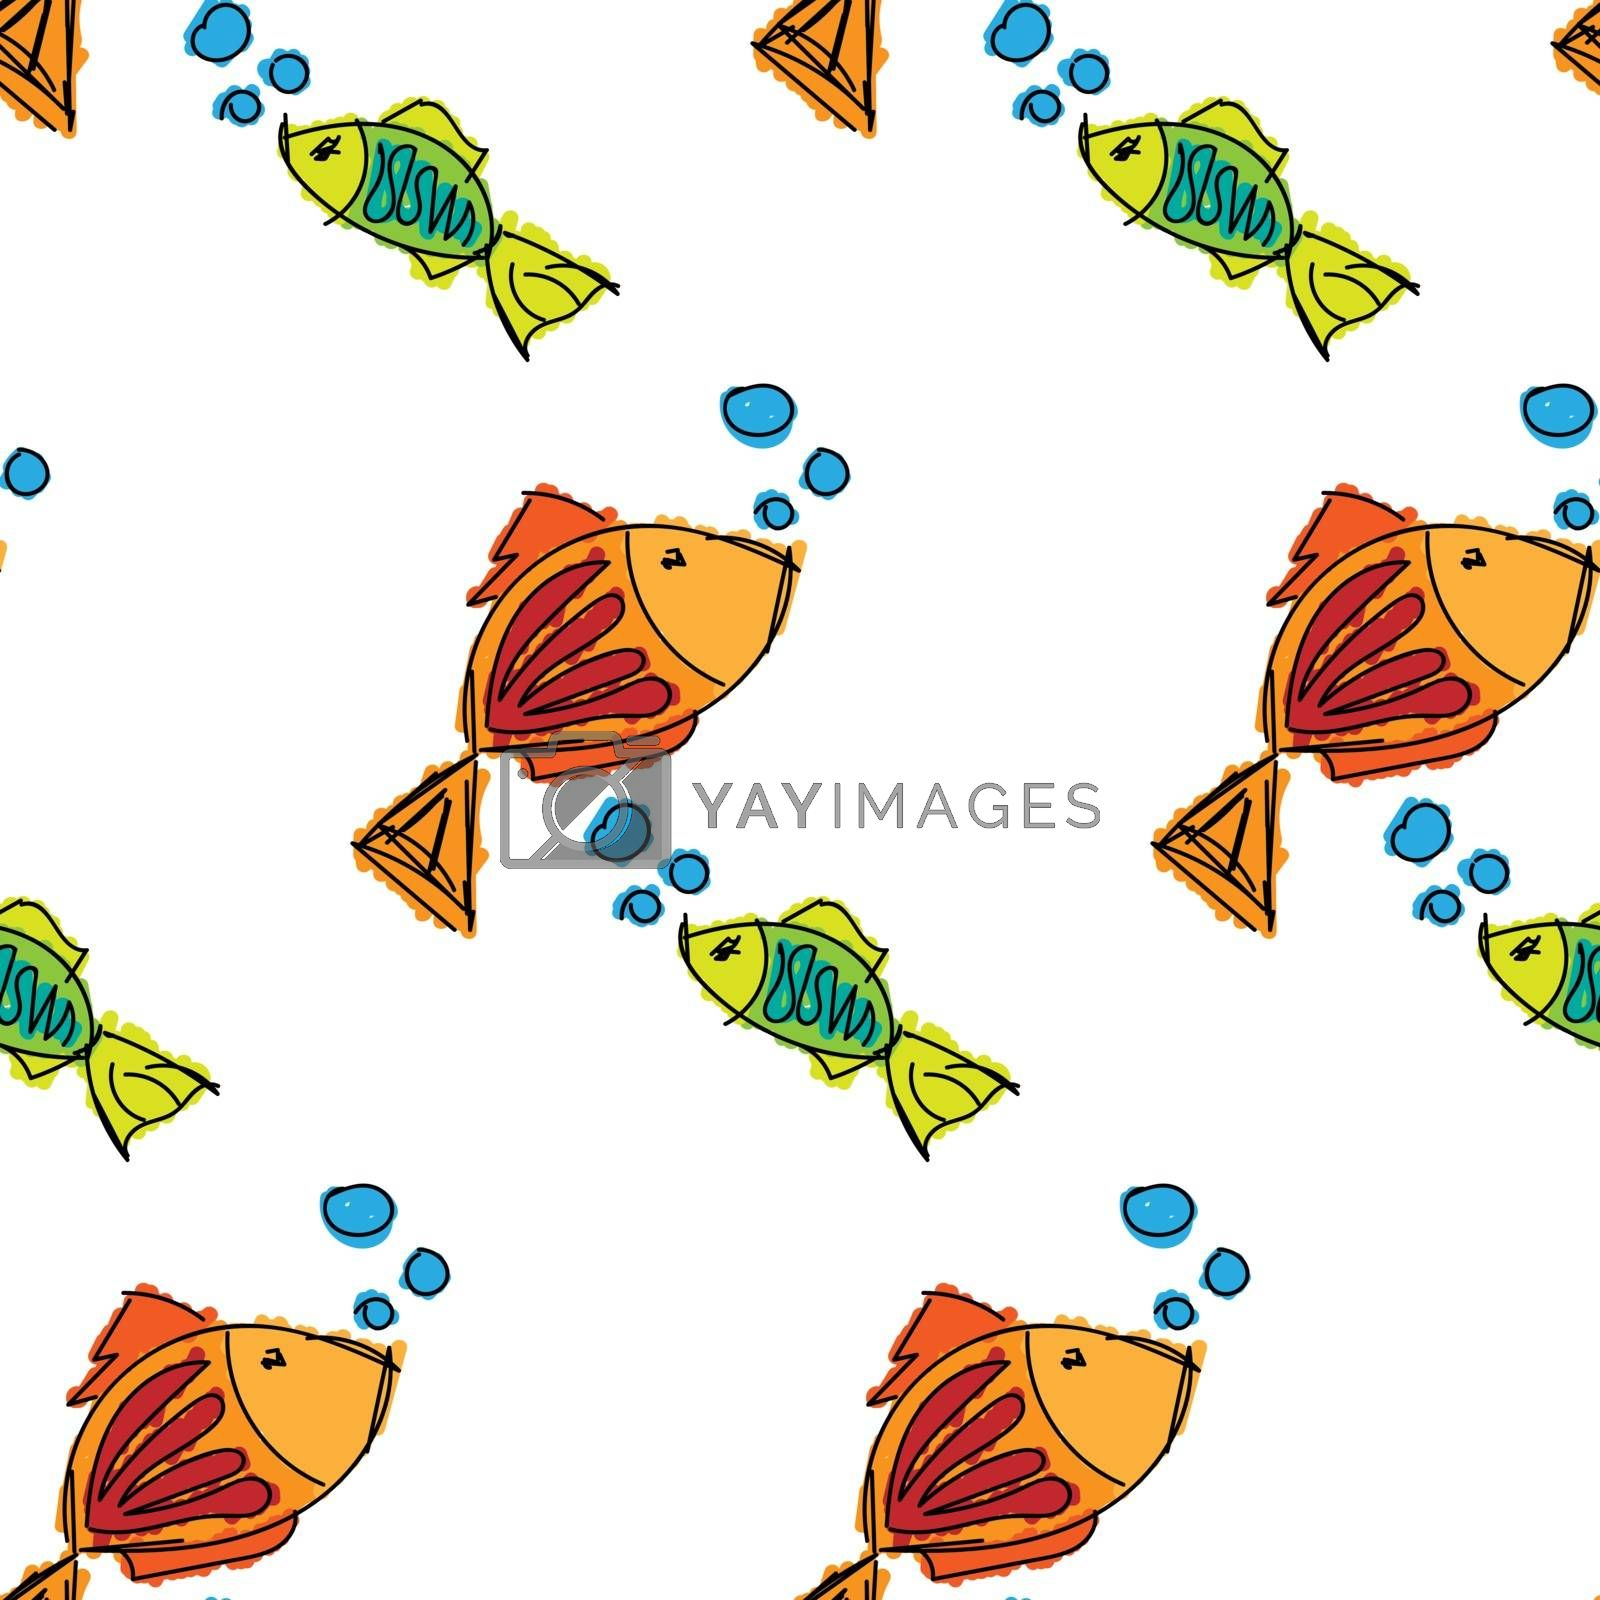 Fish contour hand drawn colored on a white background, seamless pattern